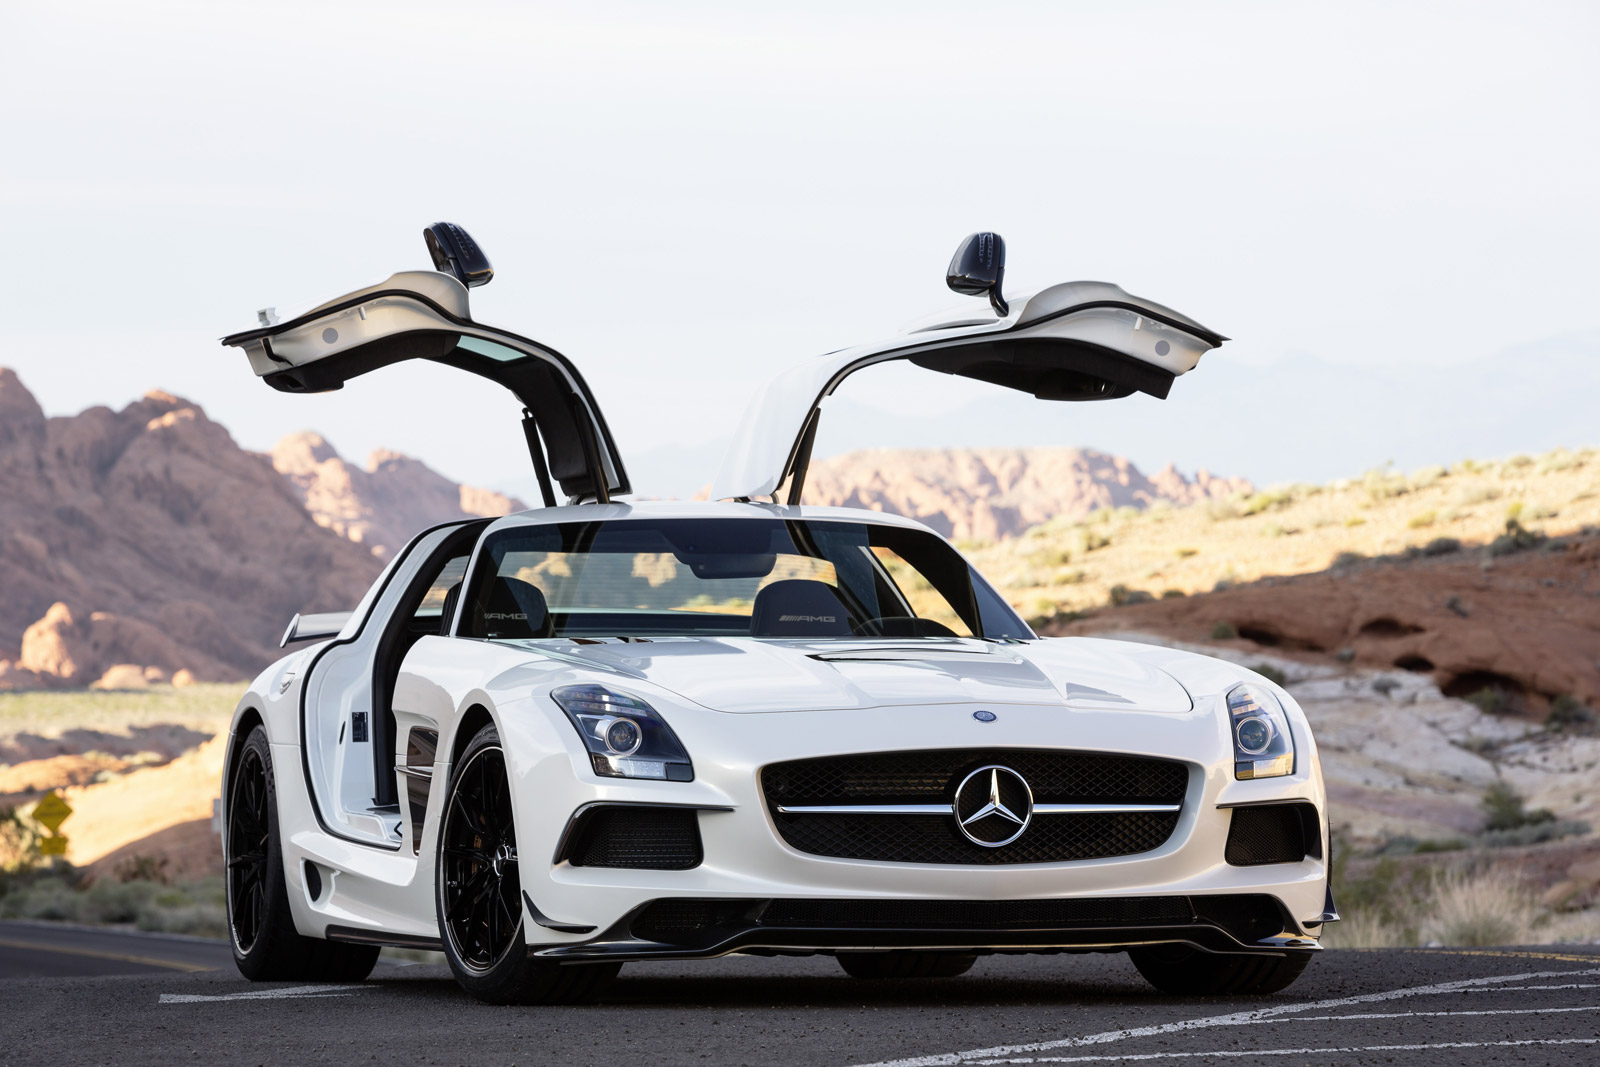 2014 mercedes benz sls amg gt review ratings specs prices and photos the car connection. Black Bedroom Furniture Sets. Home Design Ideas